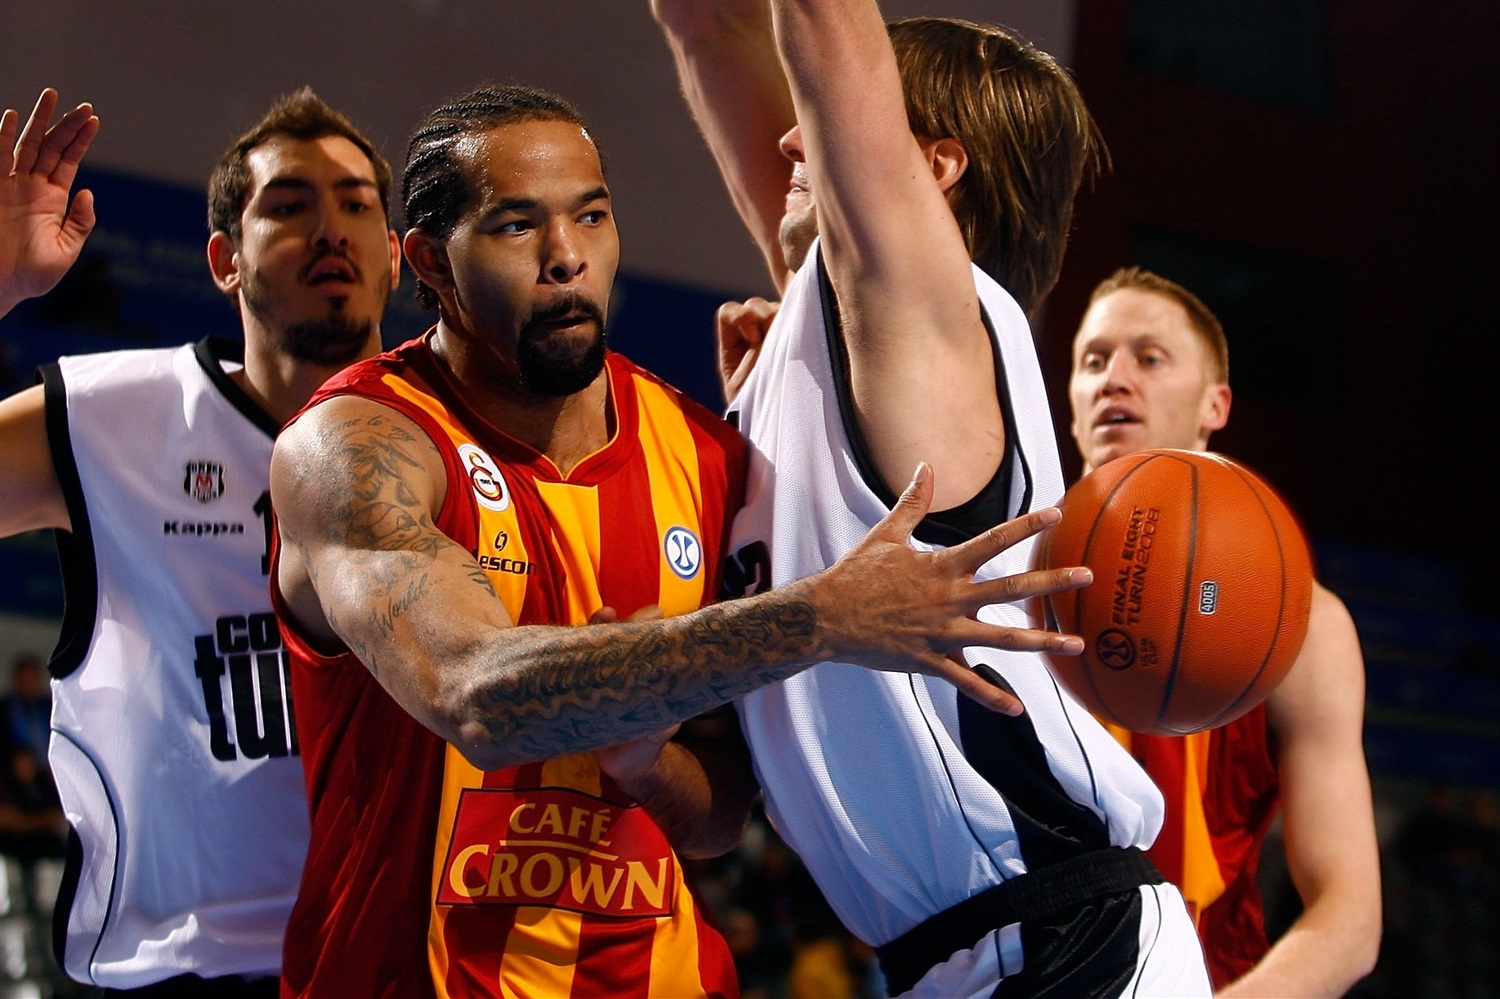 Charles Gaines - Galatasaray Cafe Crown - Final Eight Turin 2008 - EC07